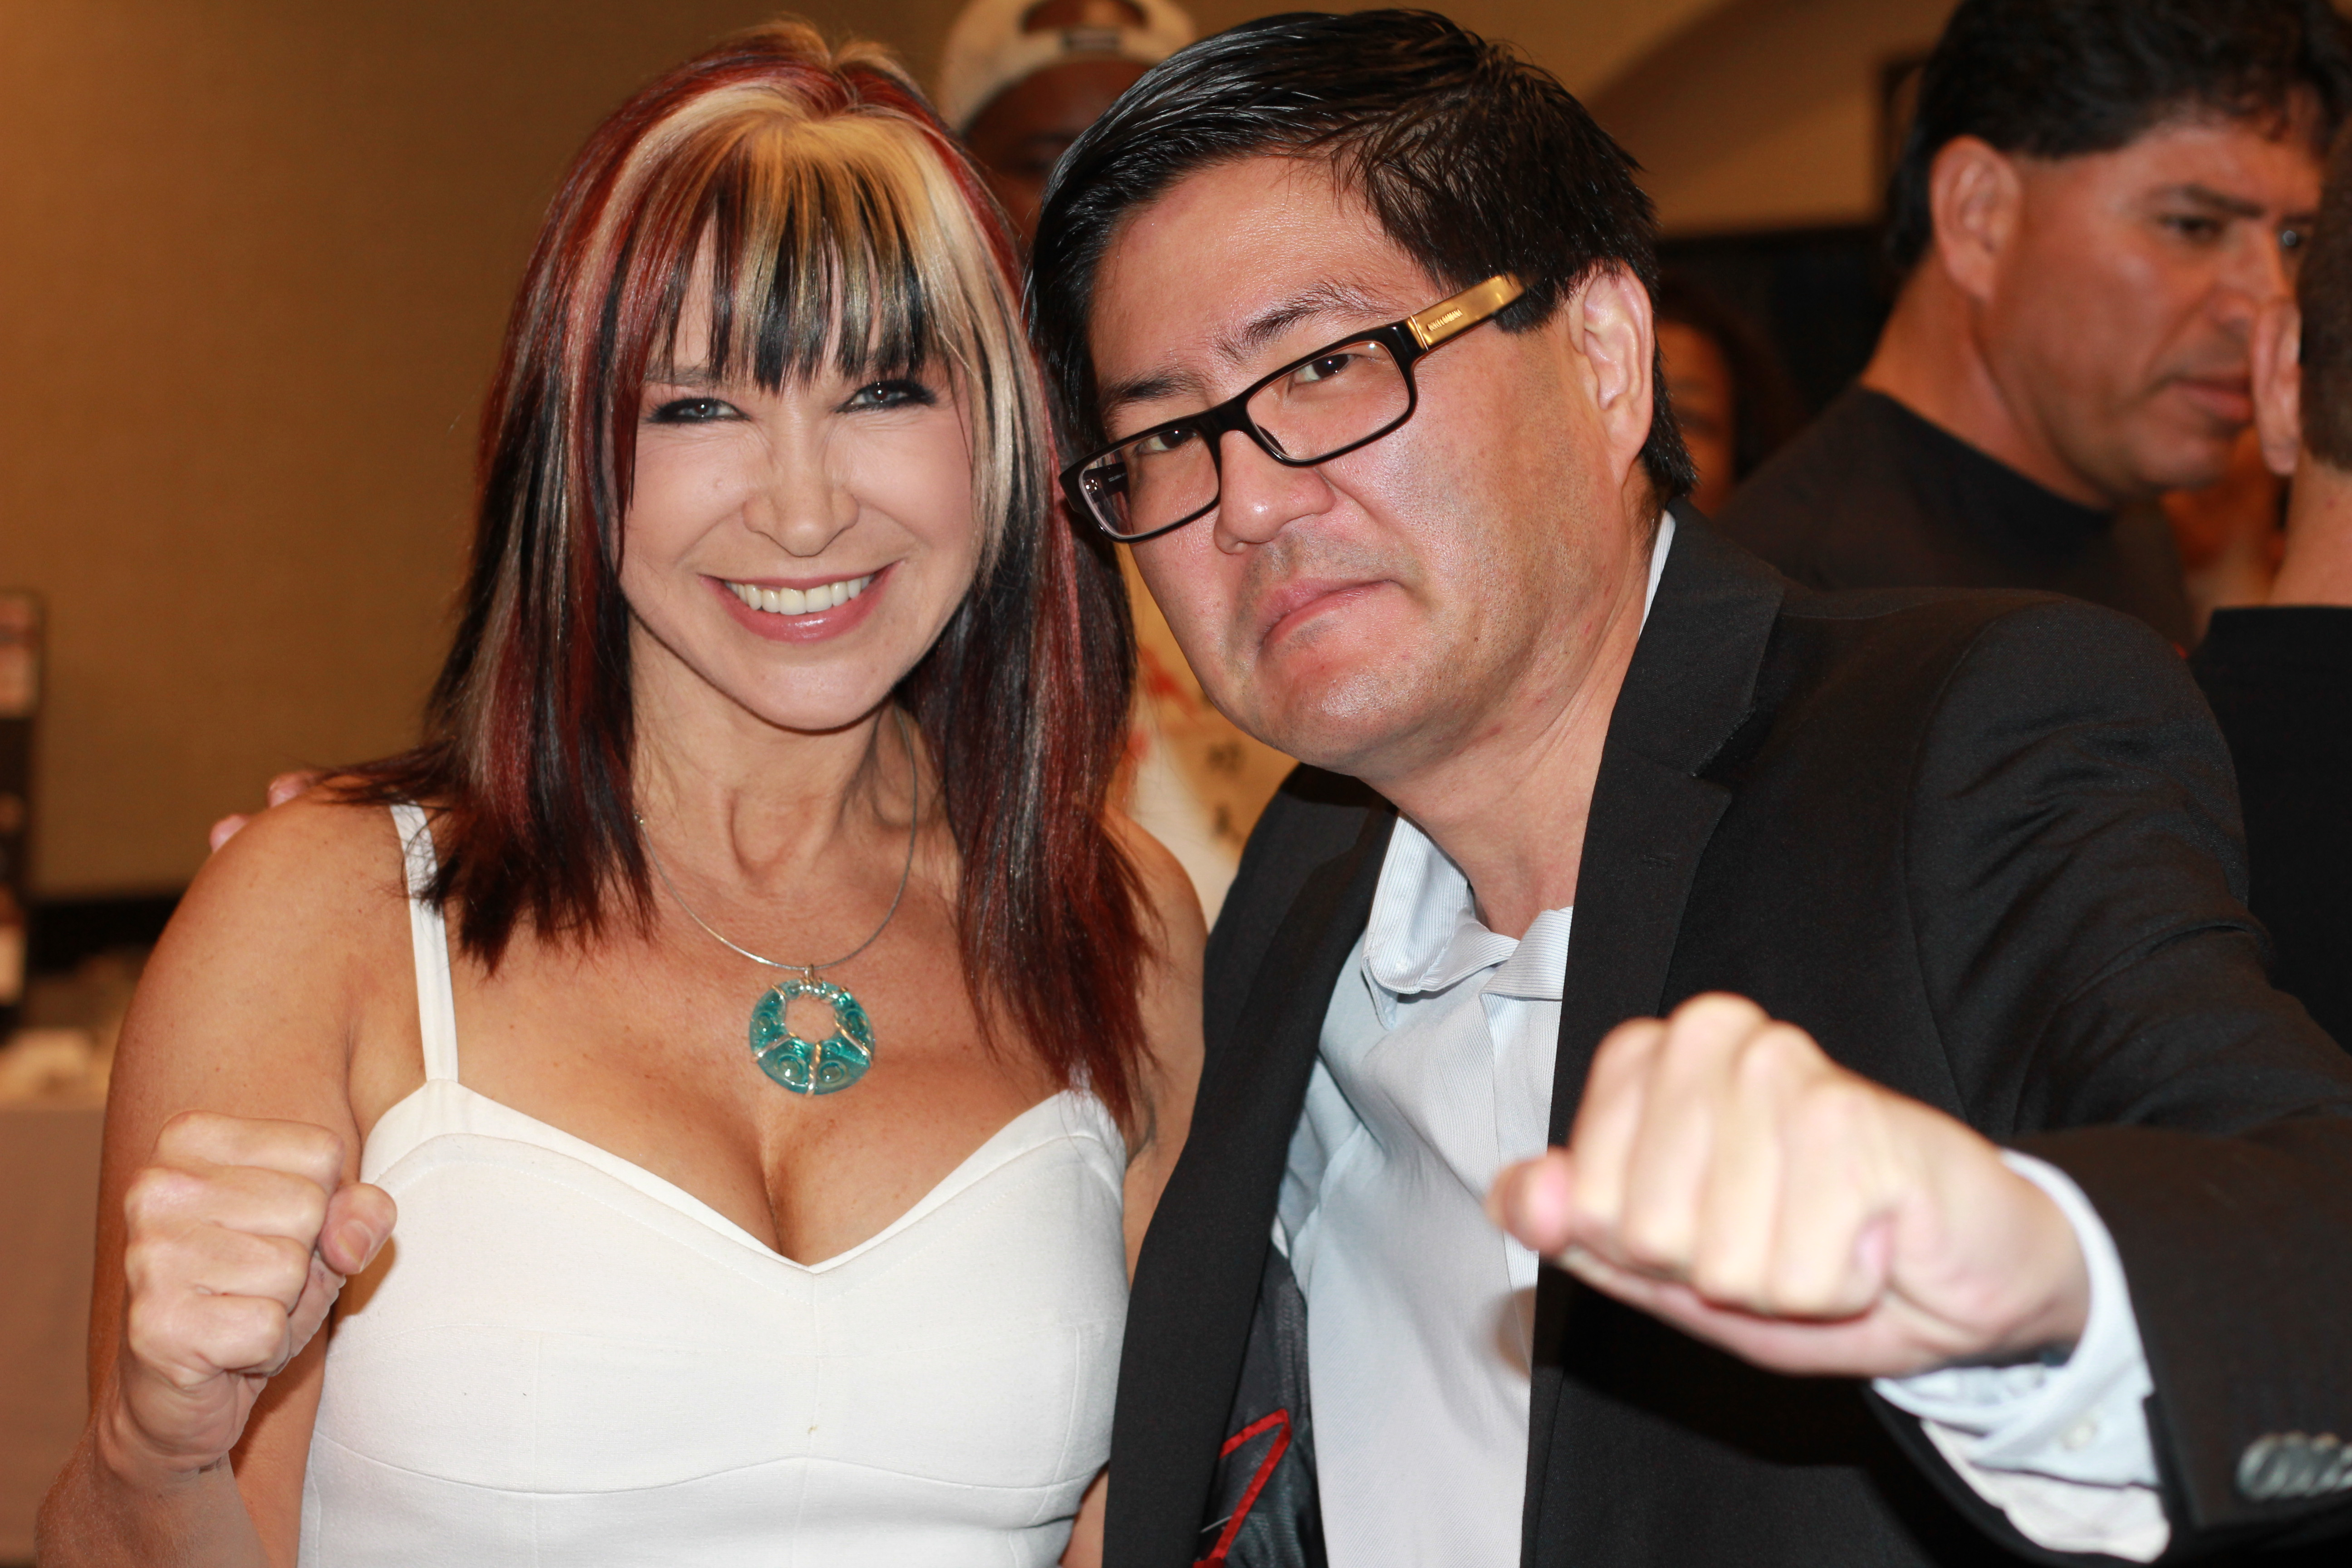 Cynthia Rothrock and Gregory Hatanaka at an event for Samurai Cop 2: Deadly Vengeance (2015)